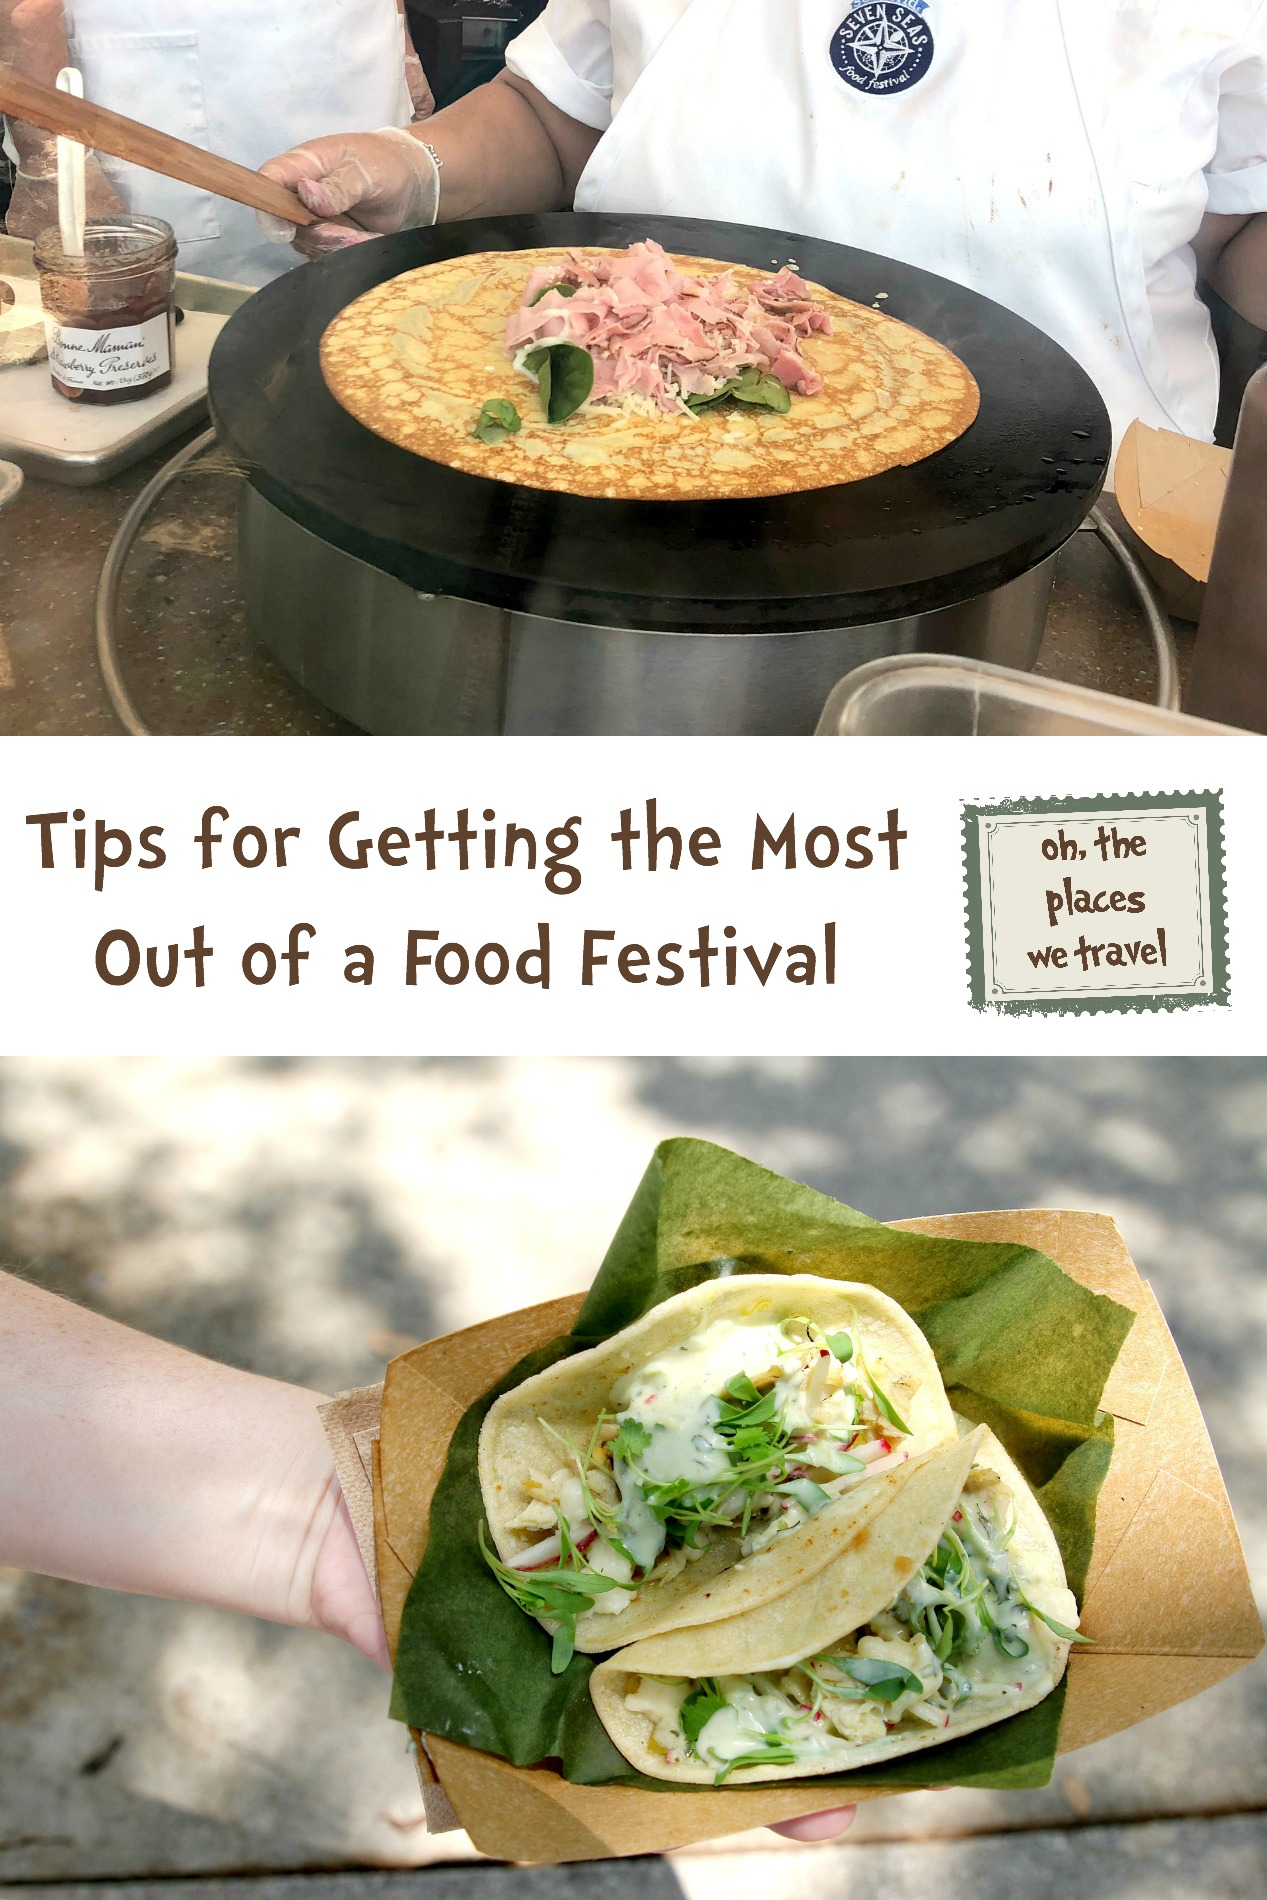 Tips for Getting the Most Out of a Food Festival